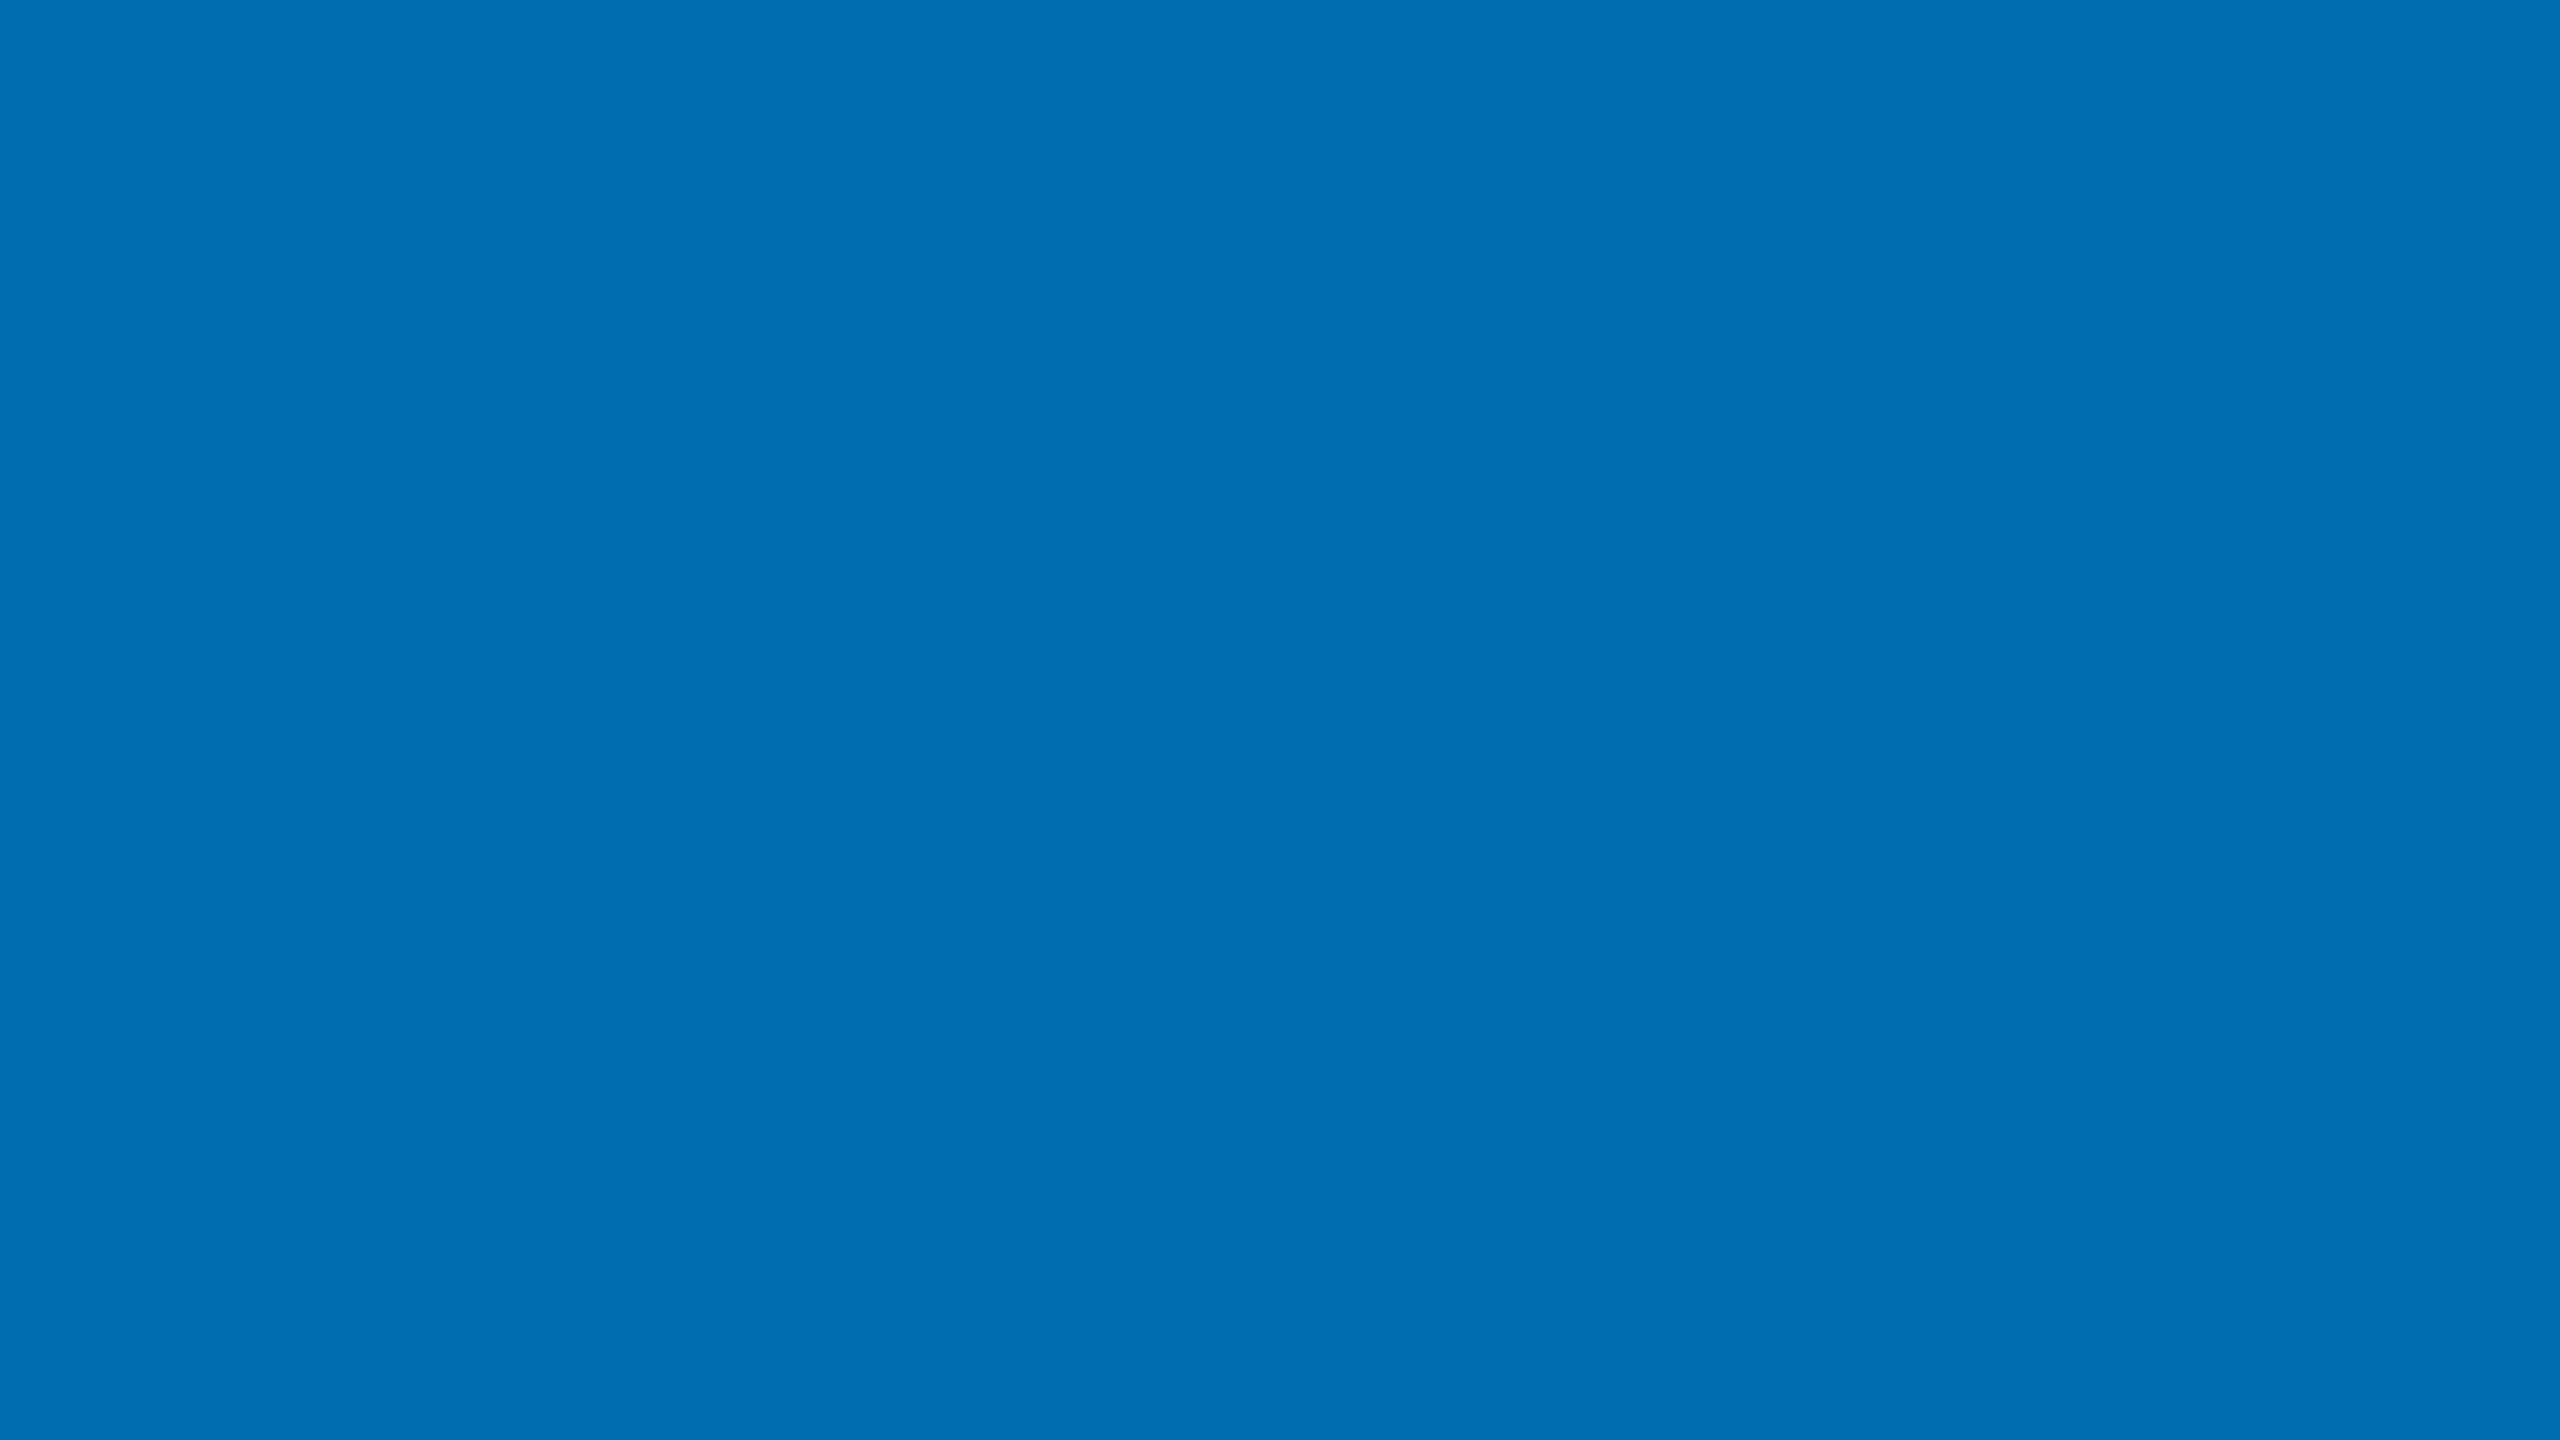 2560x1440 Honolulu Blue Solid Color Background